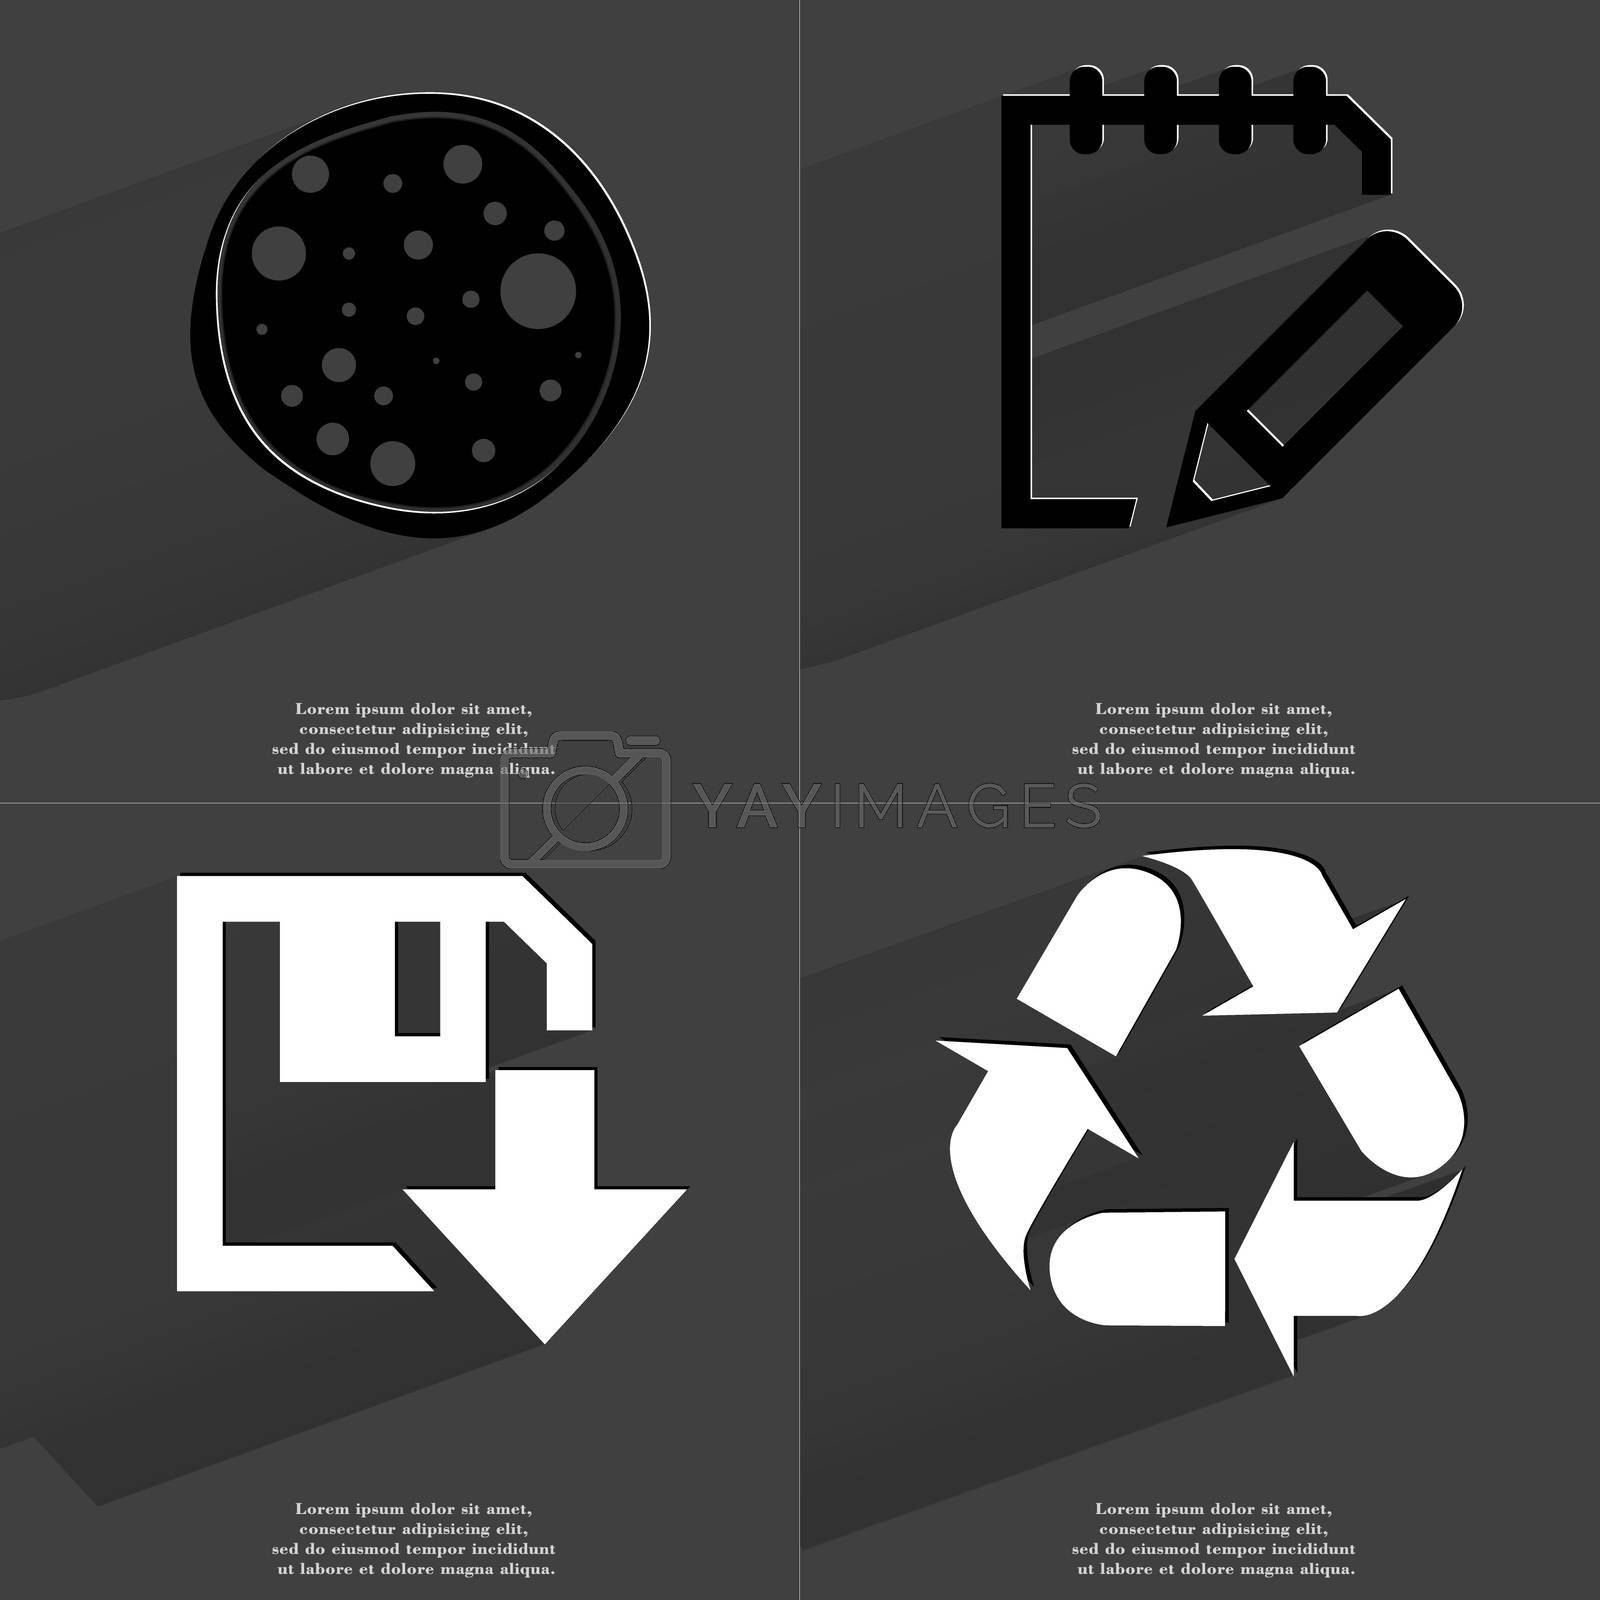 Pizza, Notebook, Floppy disk download icon, Recycling. Symbols with long shadow. Flat design by serhii_lohvyniuk